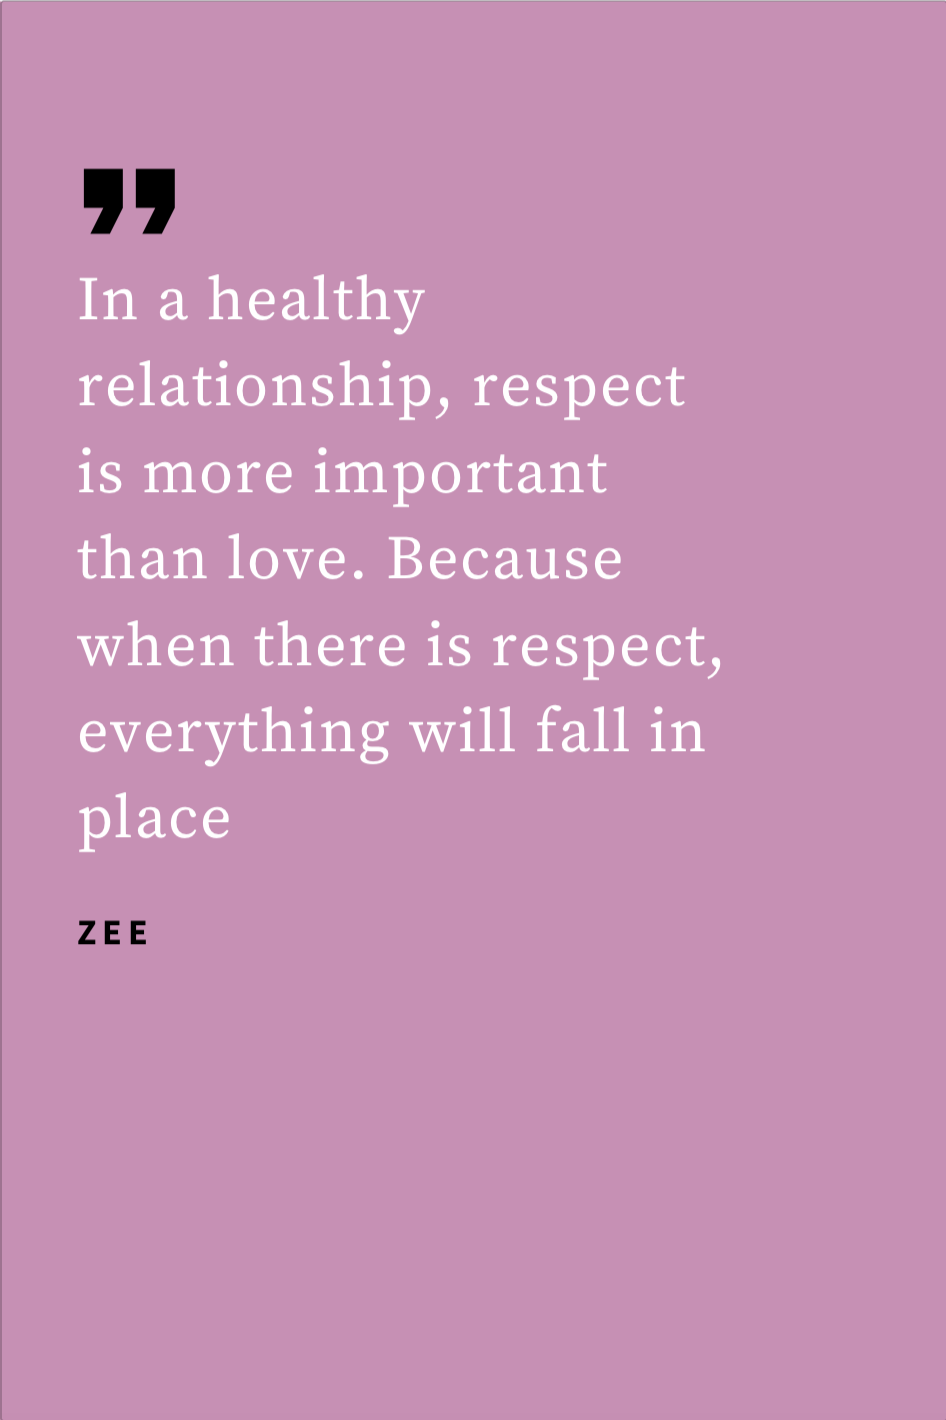 In a healthy relationship, respect is more important than